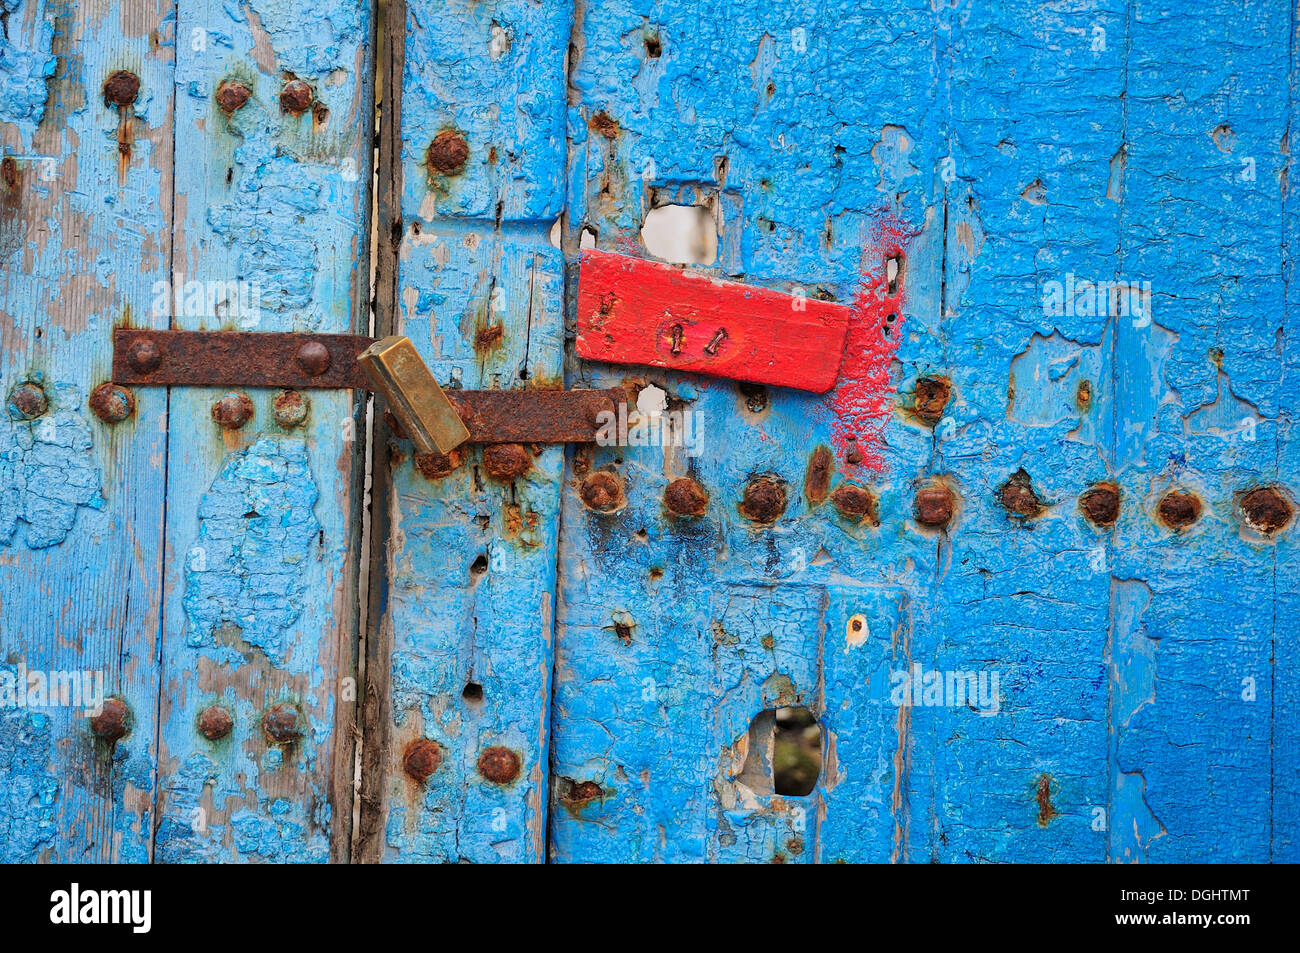 Old door with a padlock, Morocco, Africa - Stock Image